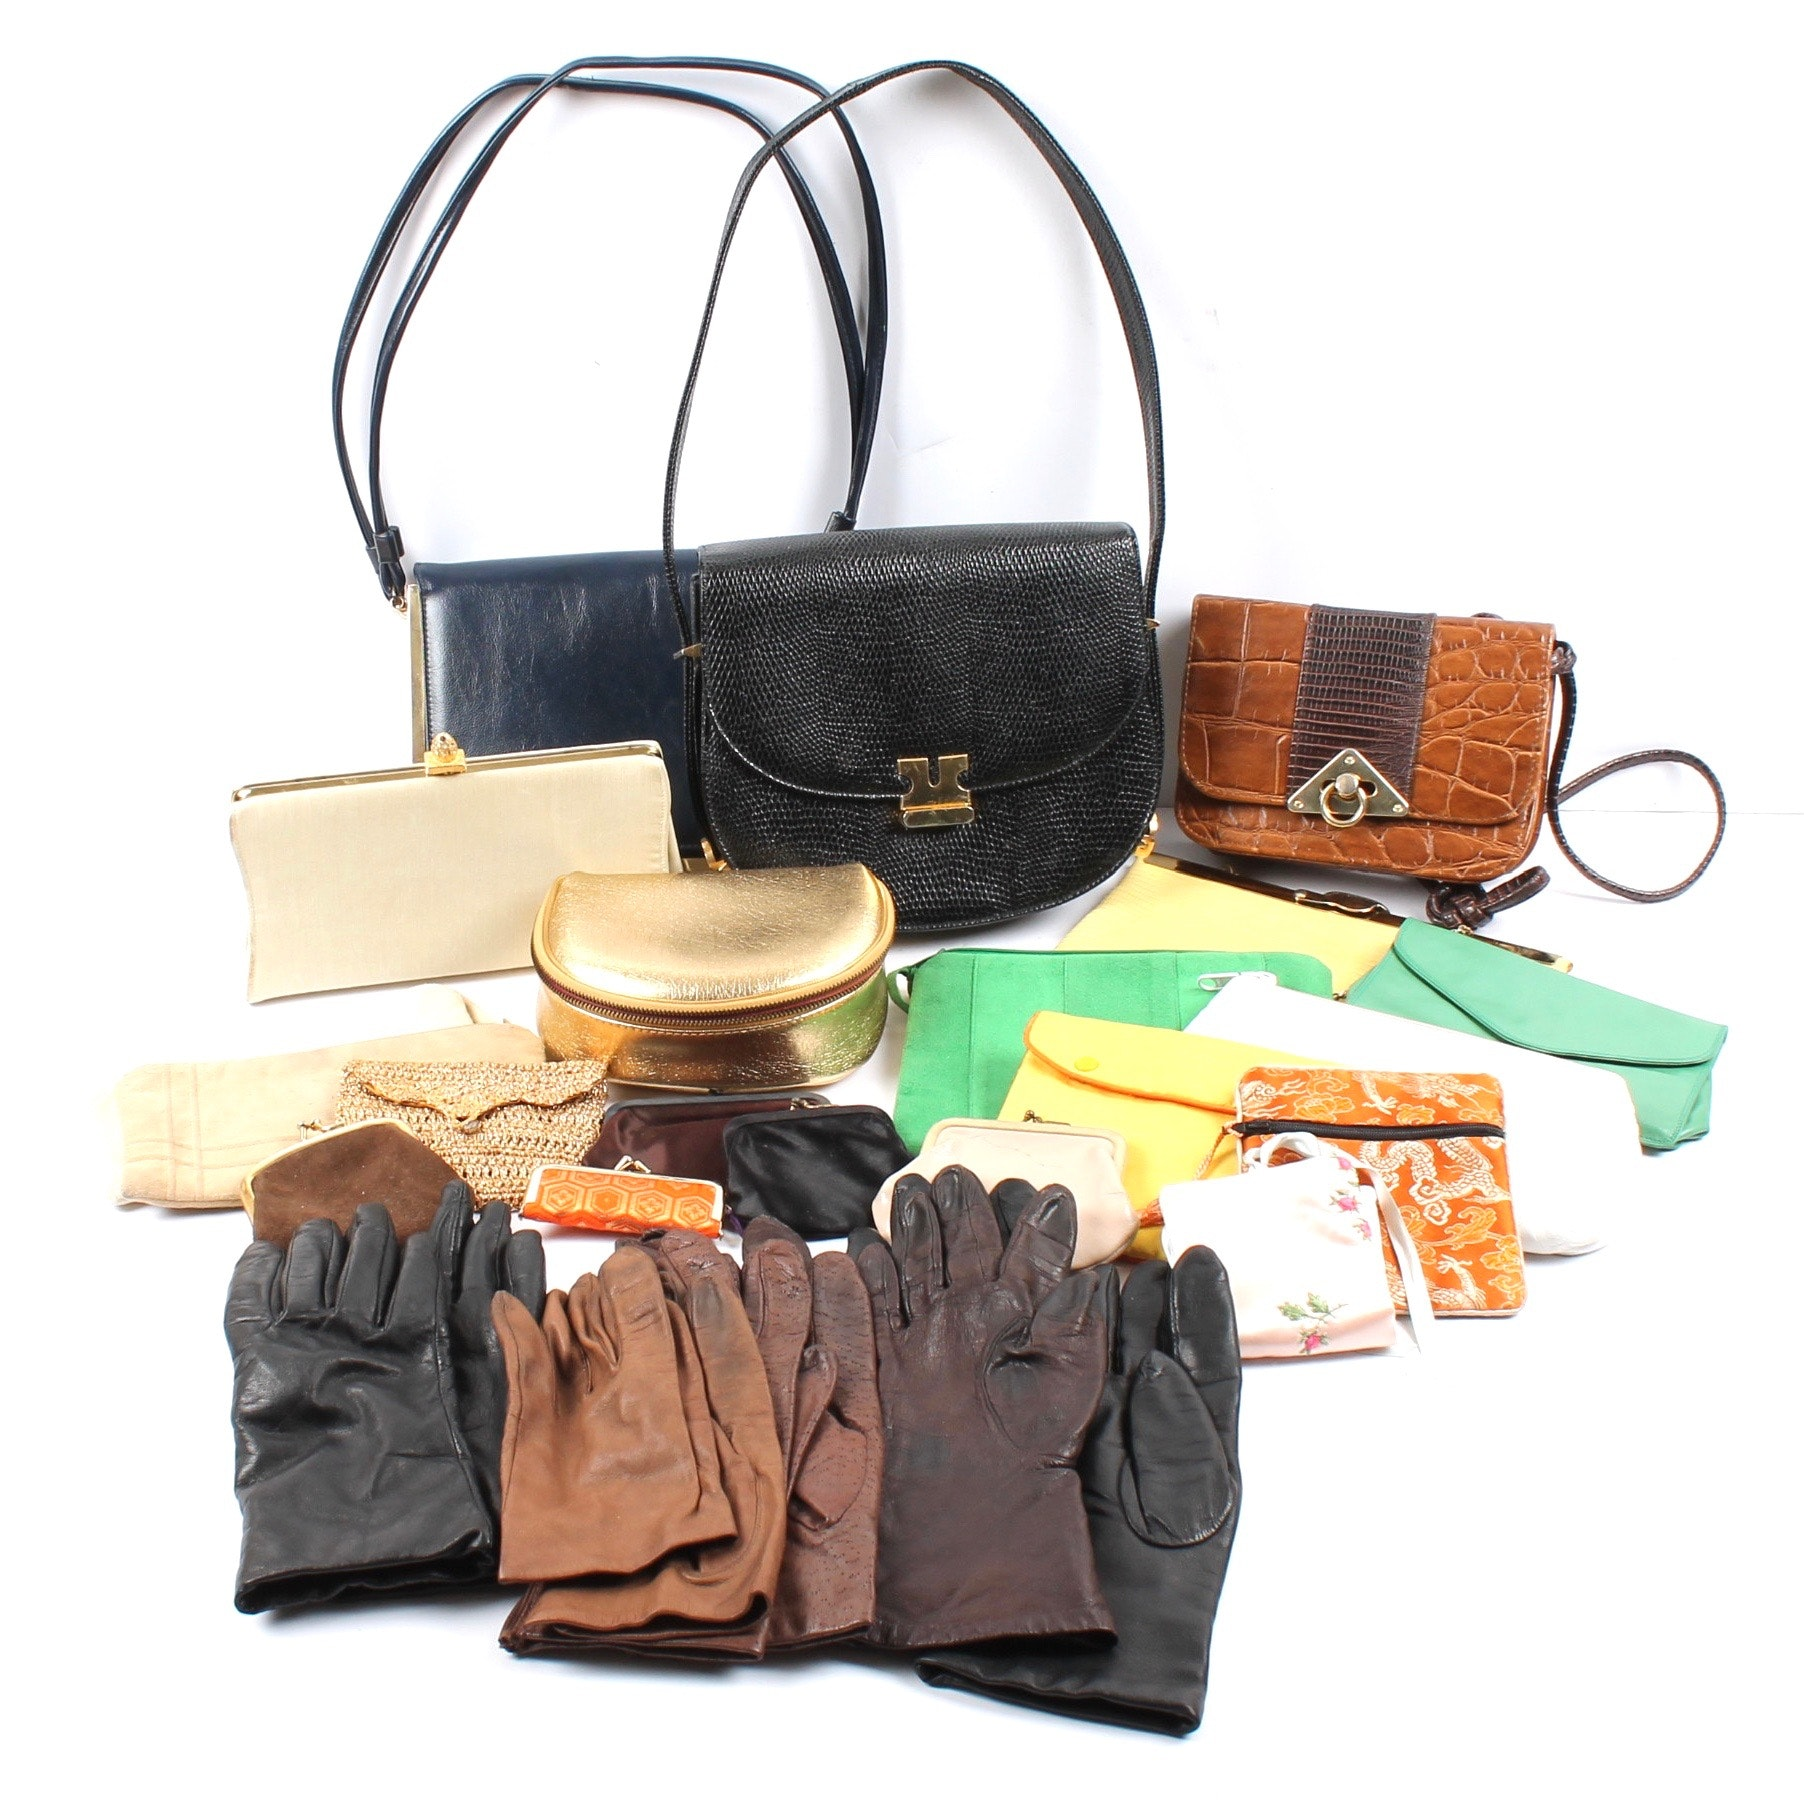 Vintage Handbags, Coin Purses, and Leather Gloves